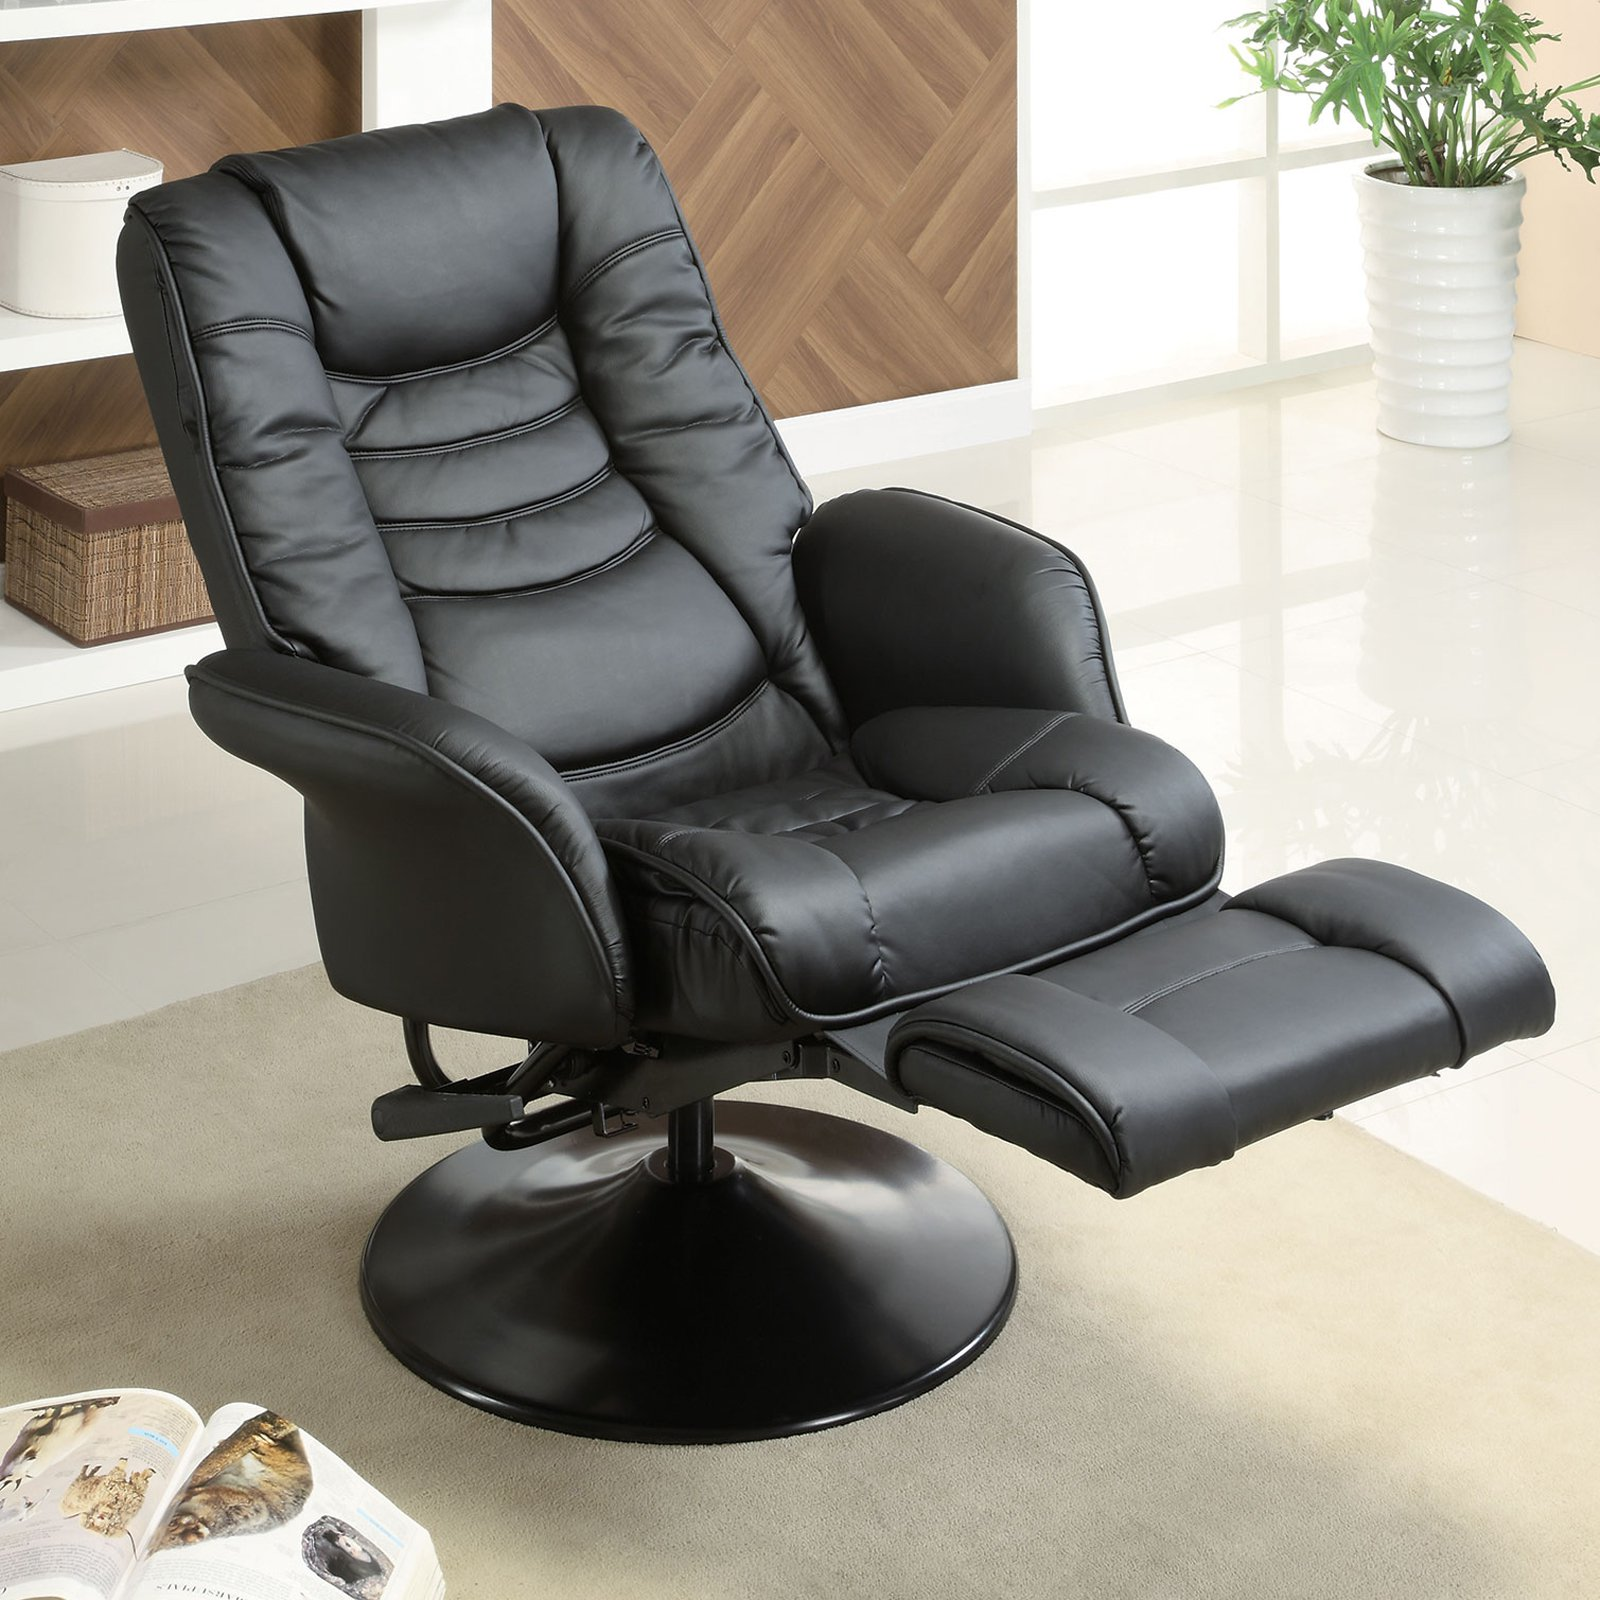 Surprising Coaster Morton Recliner Products In 2019 Swivel Recliner Gmtry Best Dining Table And Chair Ideas Images Gmtryco